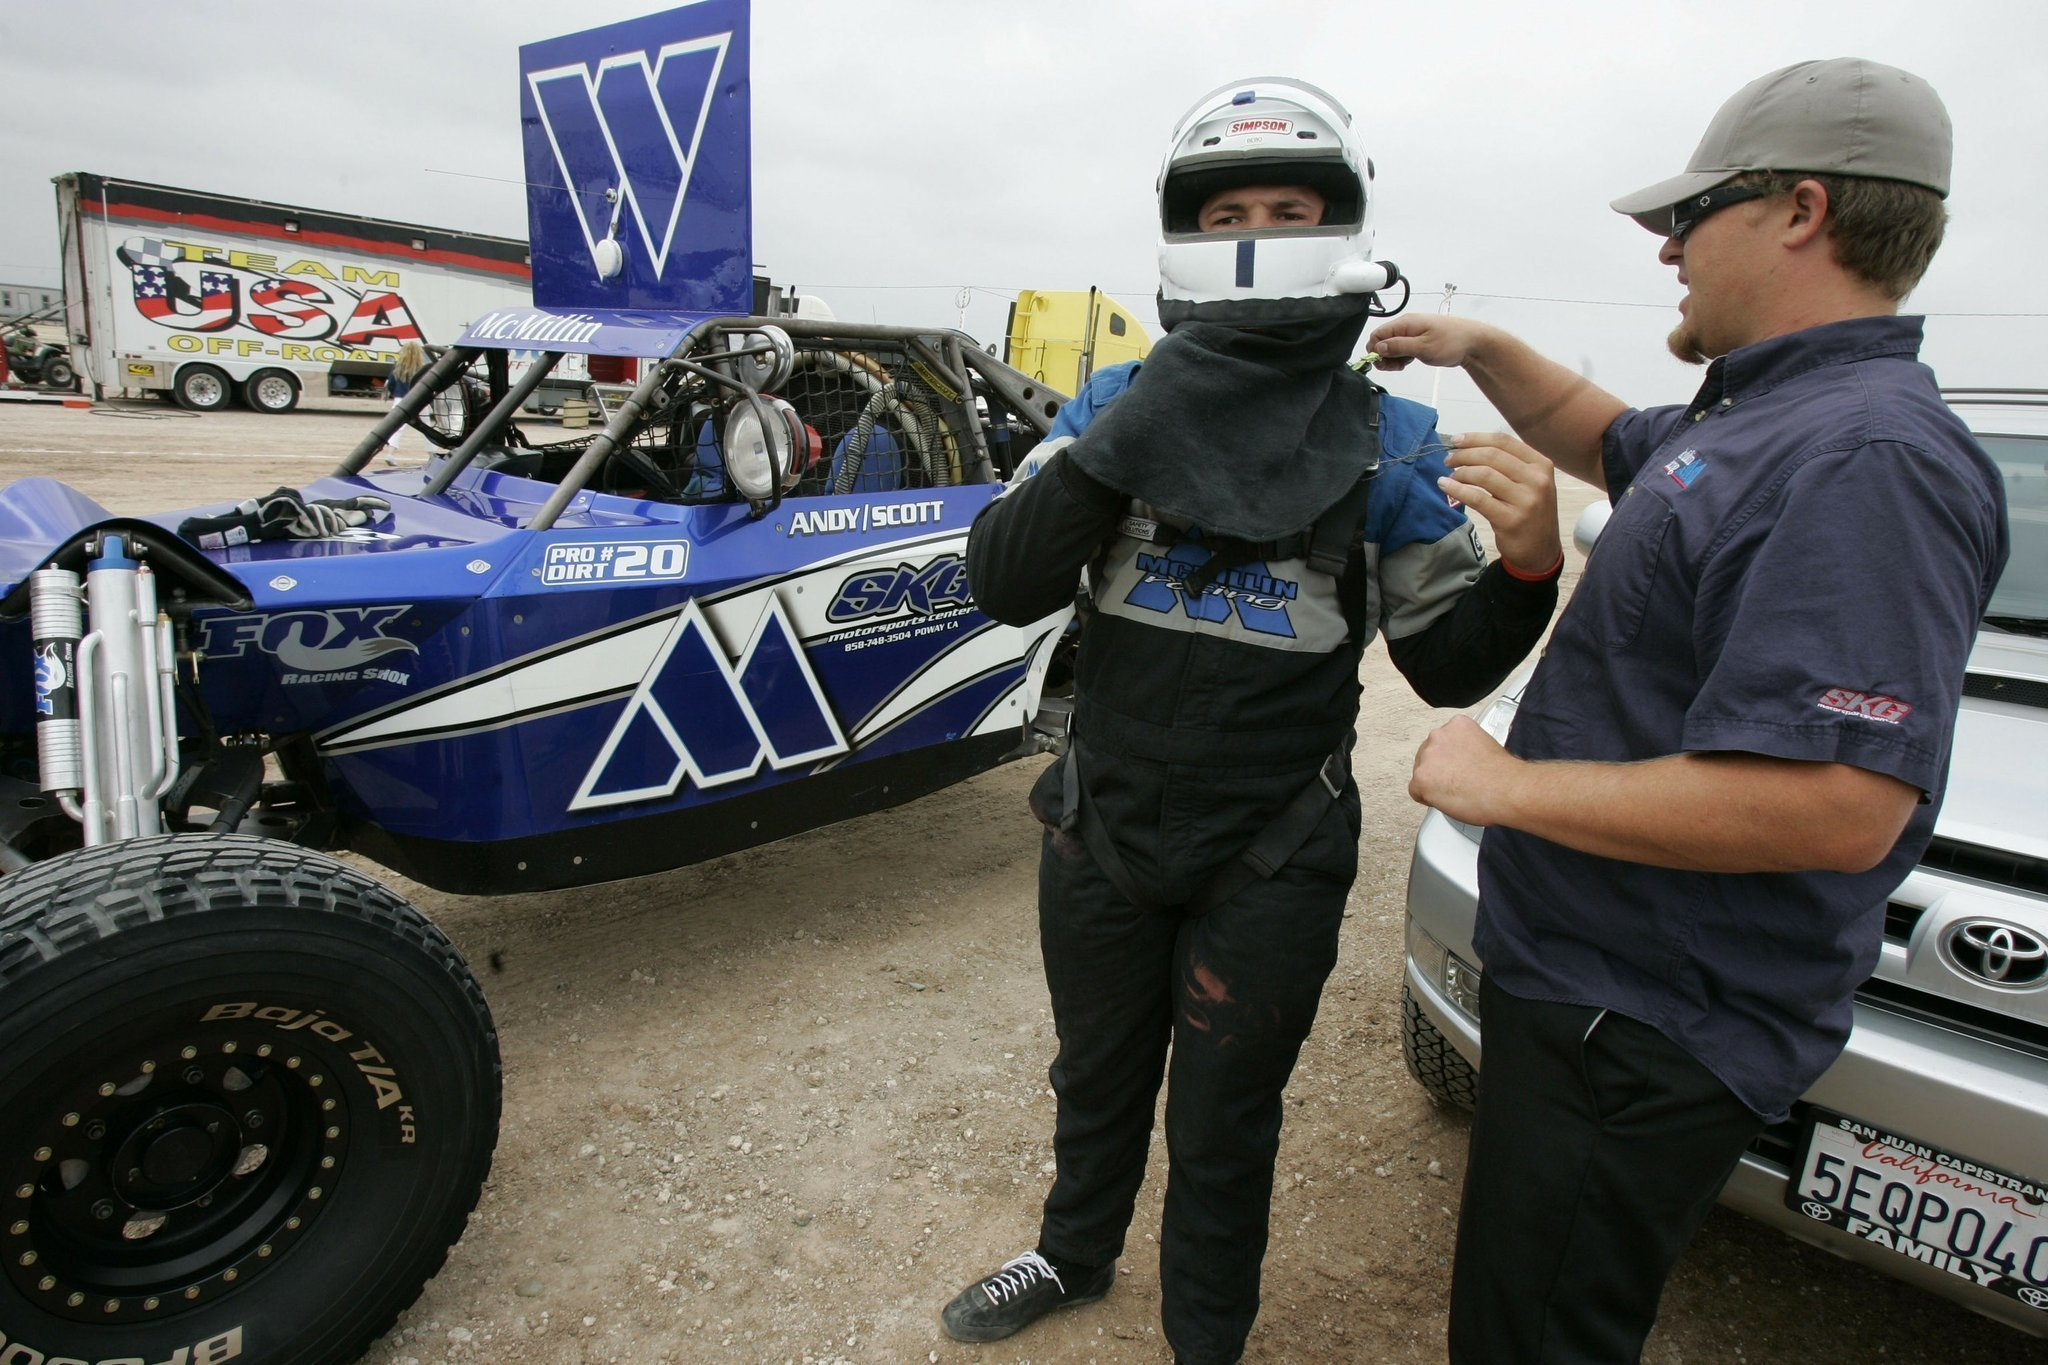 McMillin perseveres at Imperial Valley 250 The San Diego Union Tribune